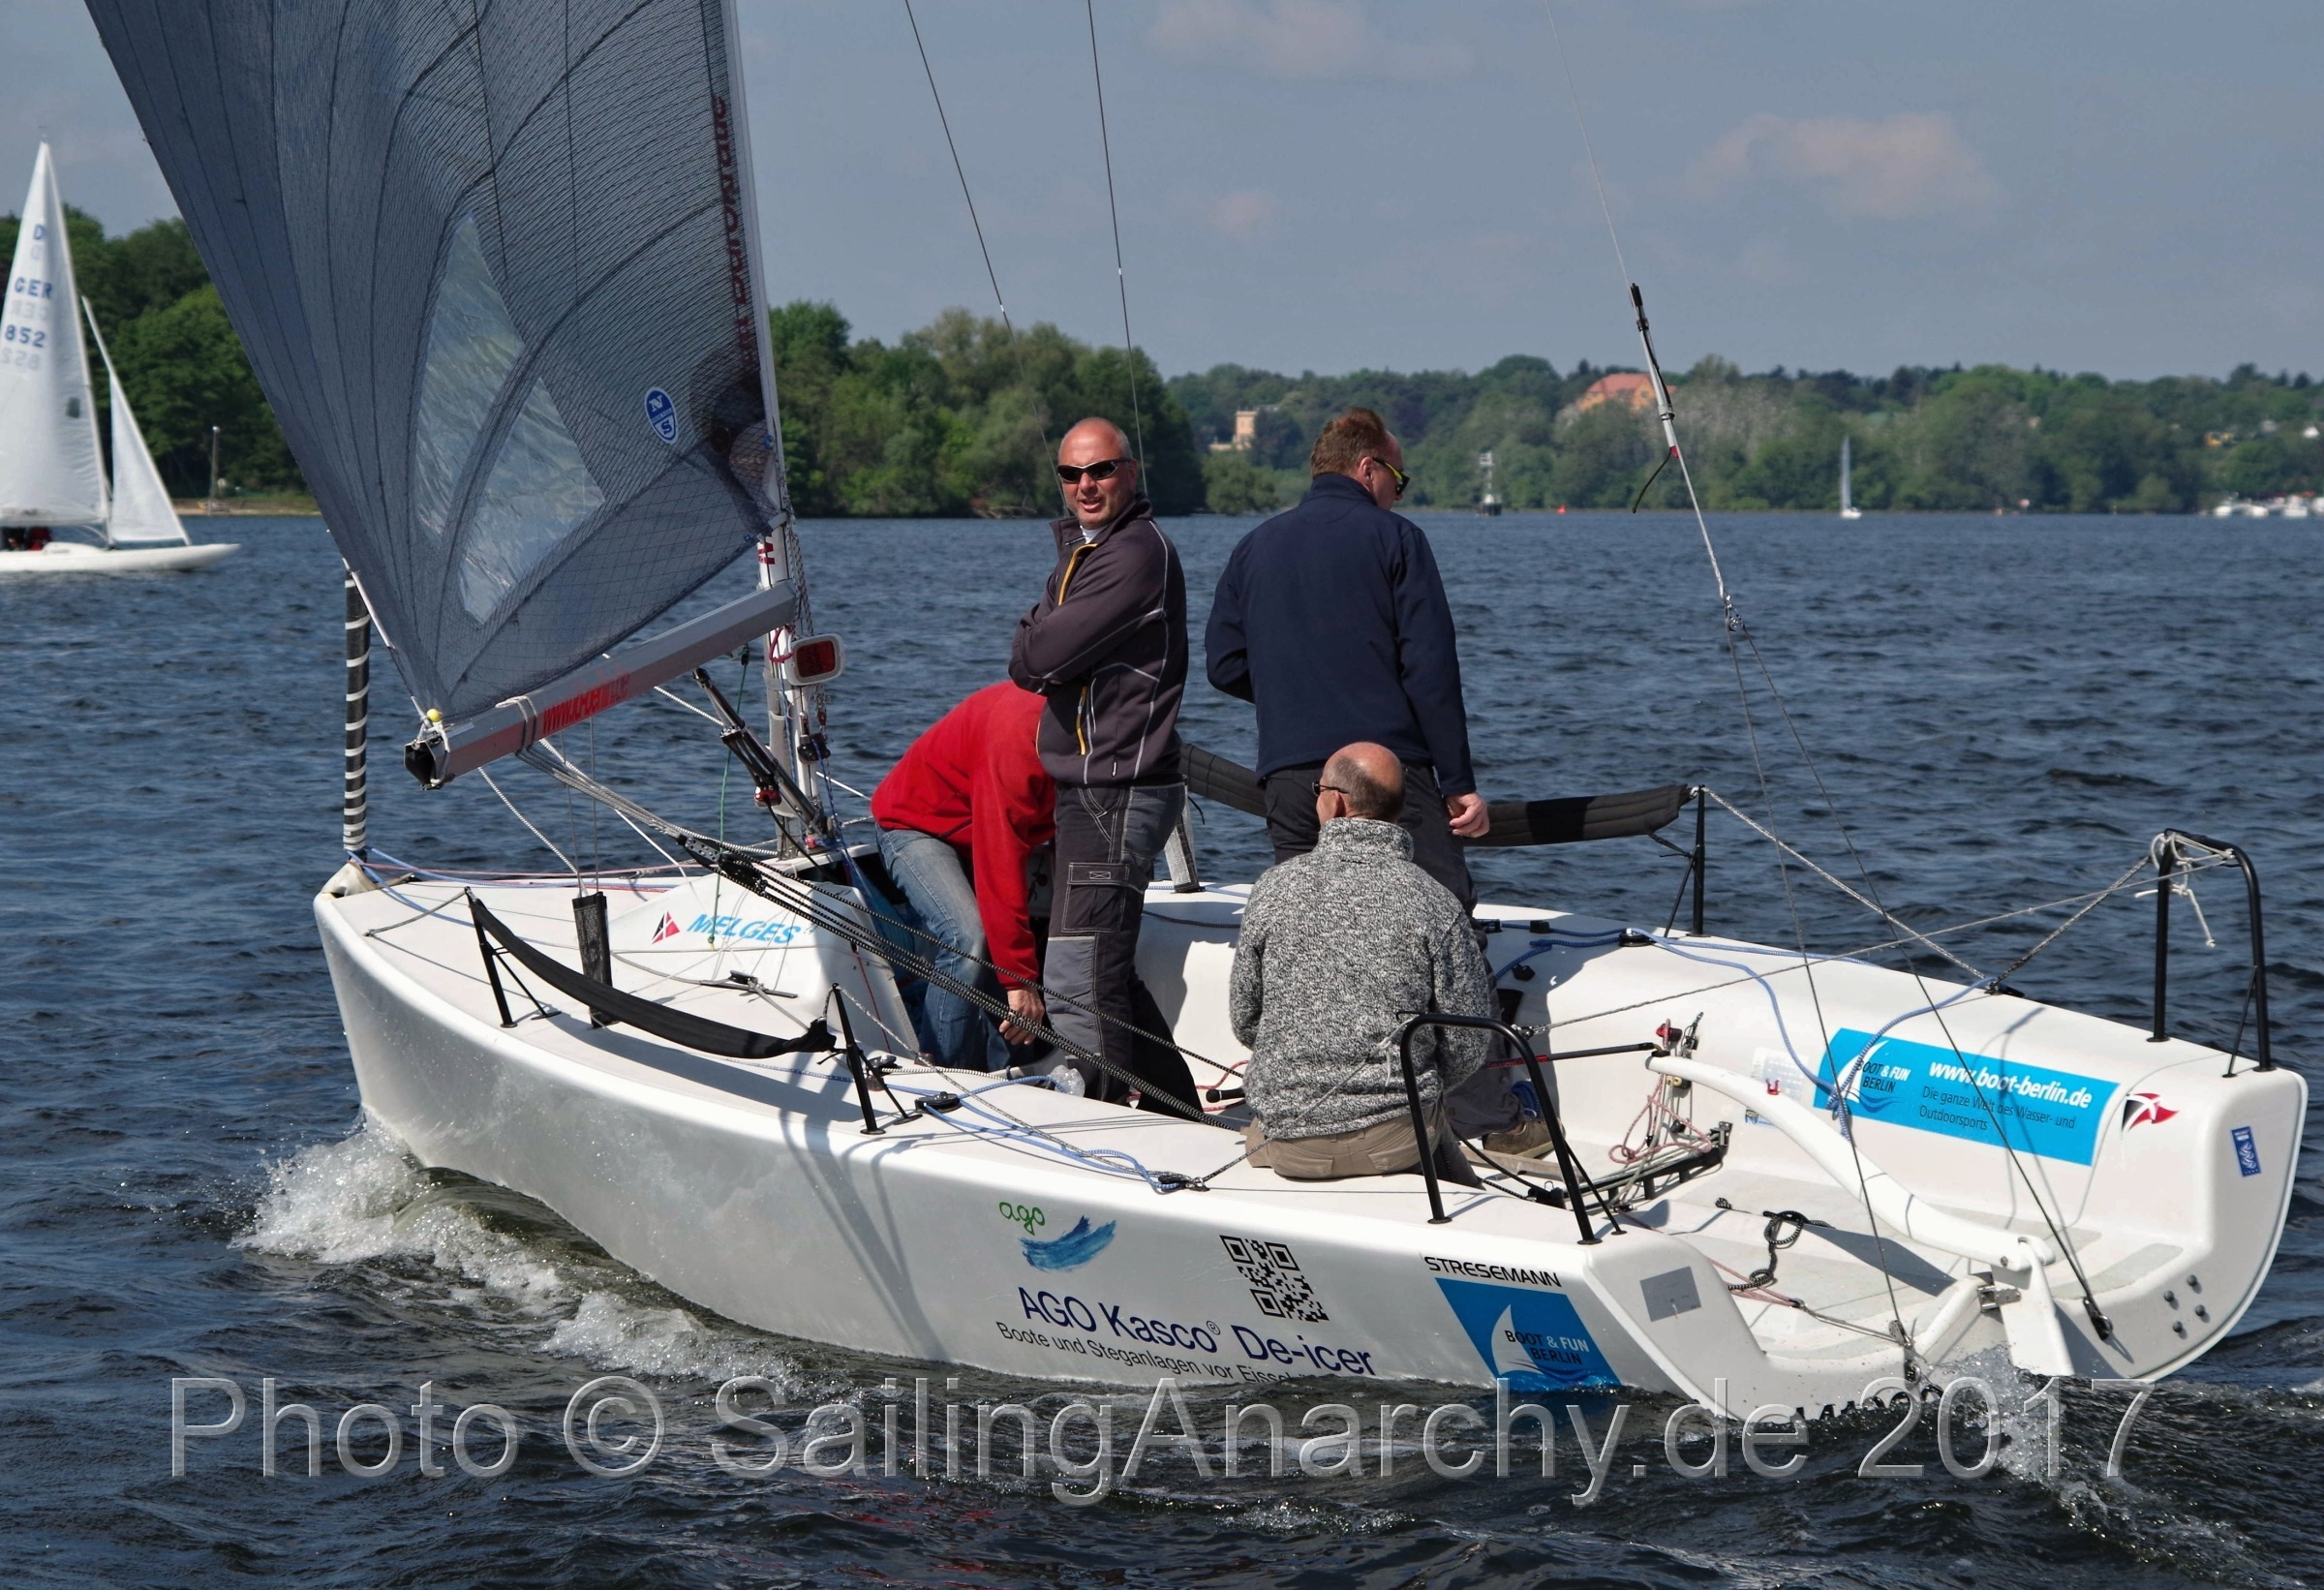 Rupenhorn Regatta 2017 - Stesemann - Melges 24 - Photo © SailingAnarchy.de 2017